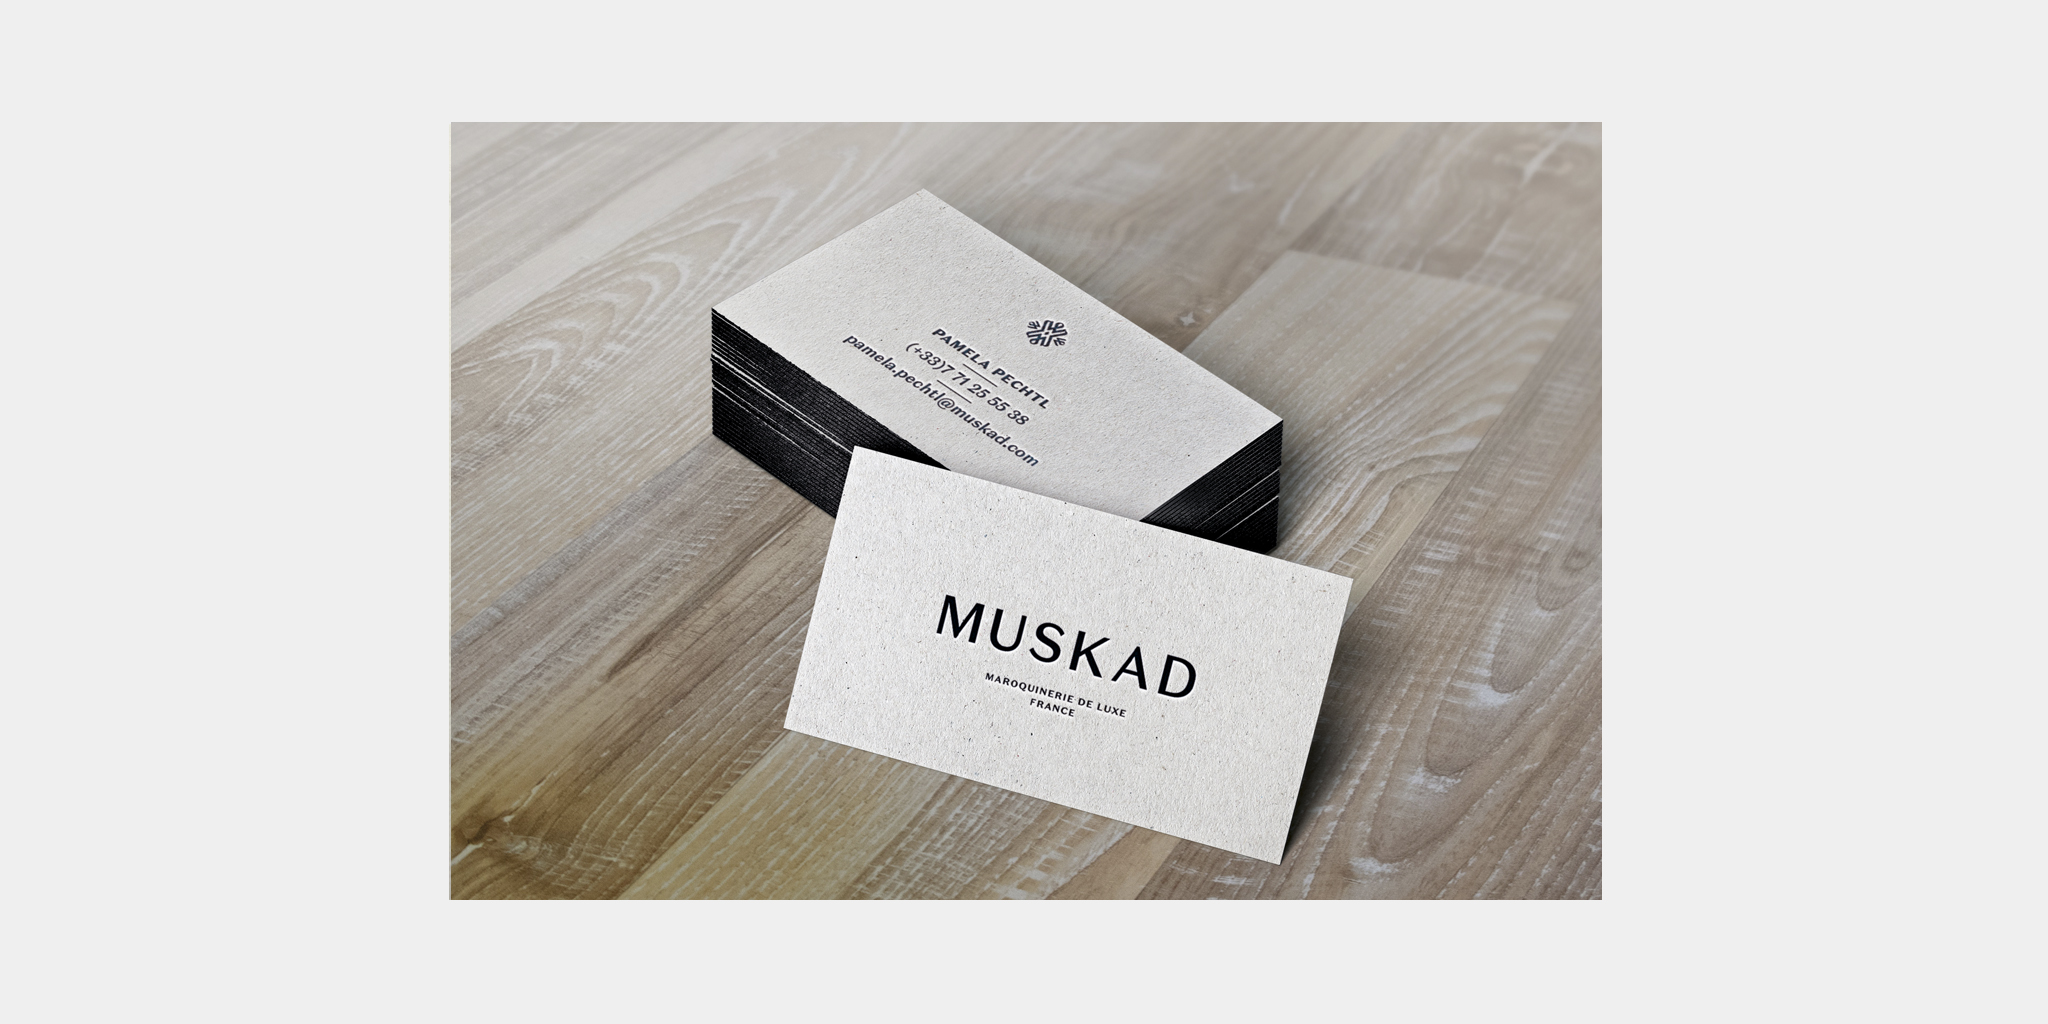 MUSKAD_BUNDS2